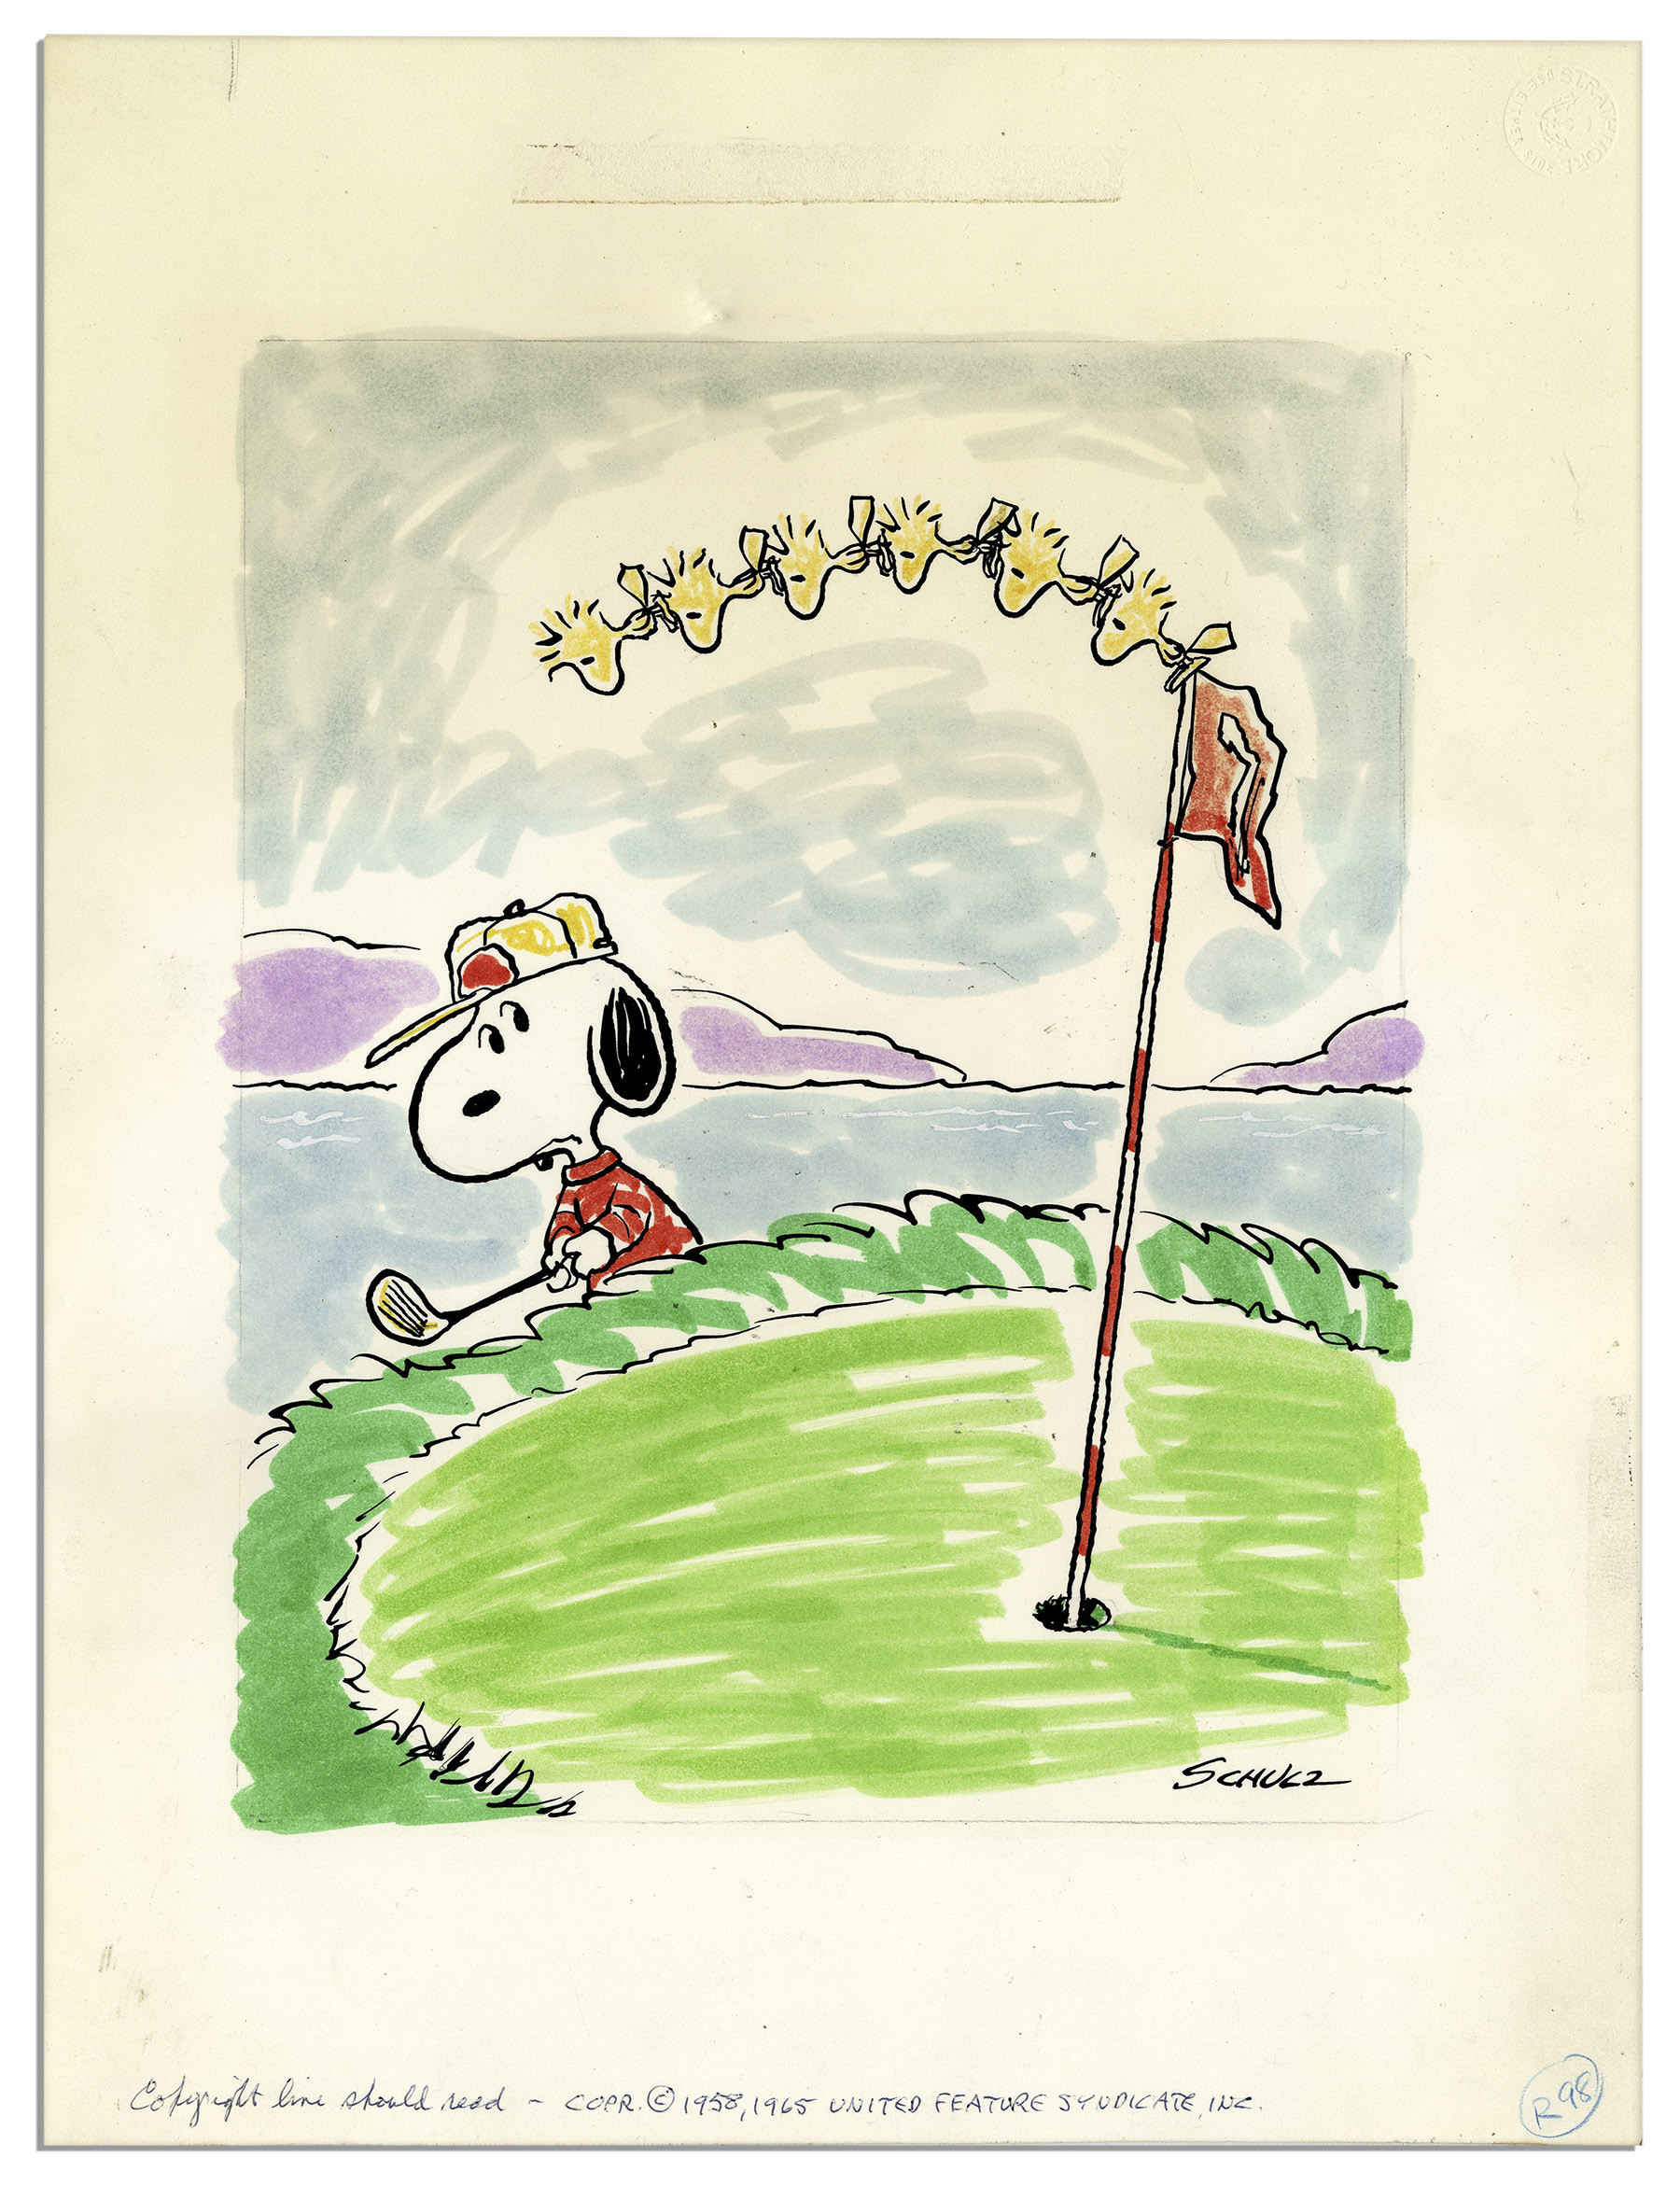 1800x2357 Charles Schulz ''Peanuts'' Golf Theme Color Original Artwork Starring  Snoopy & Woodstock